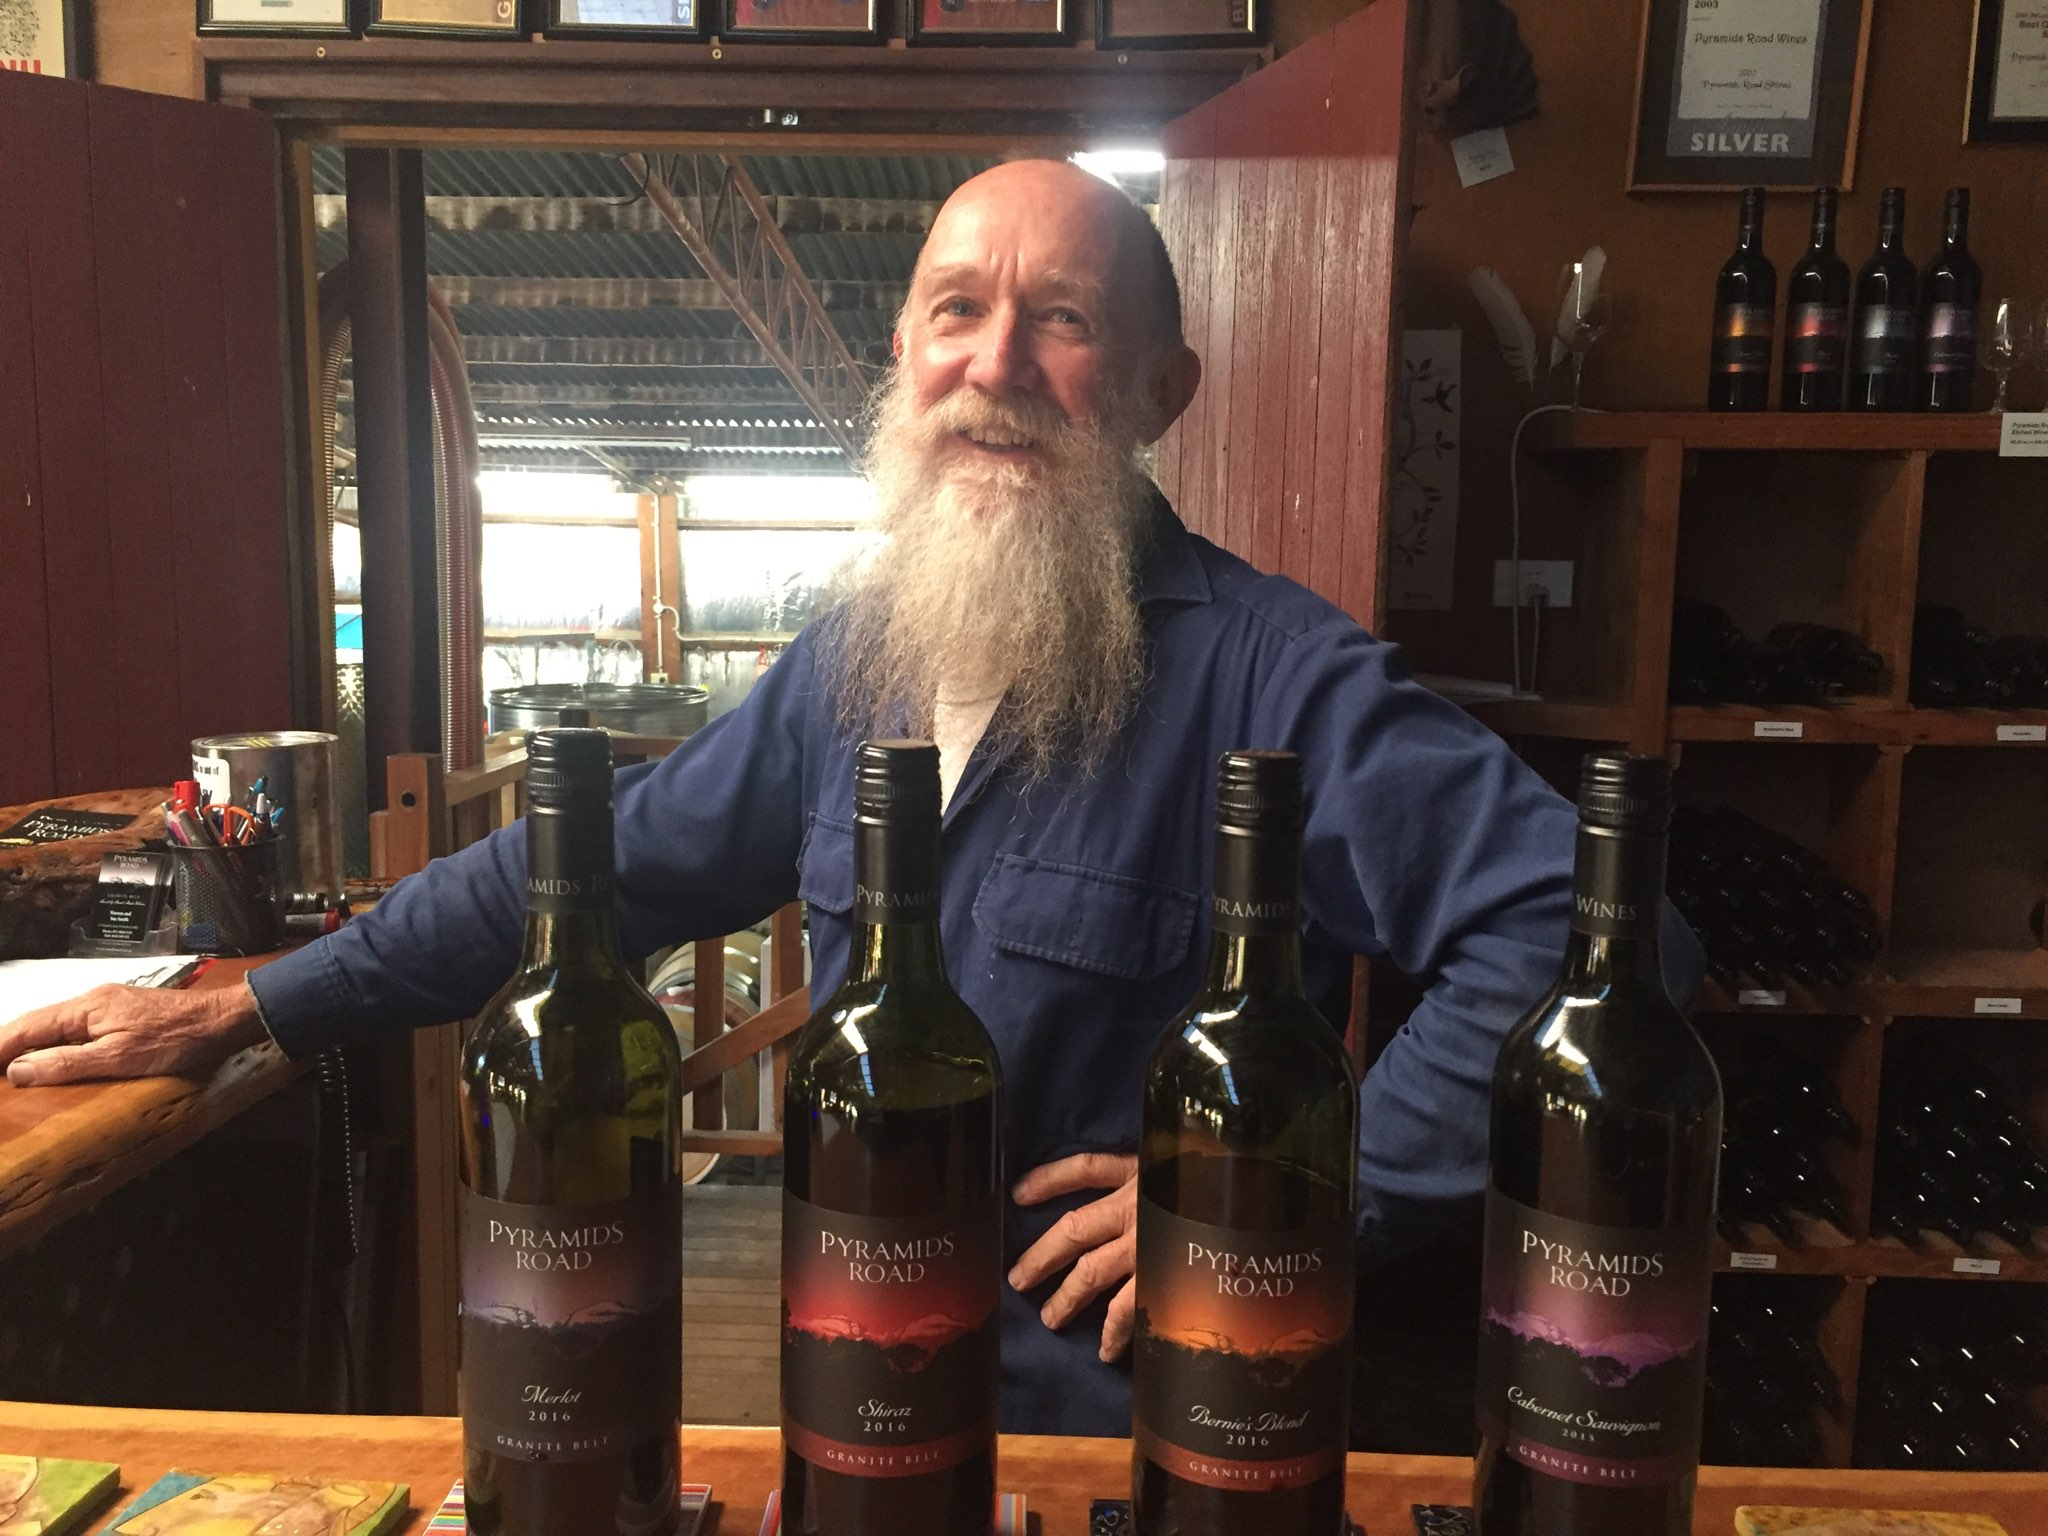 meet the winemaker at Pyramids Road Wines